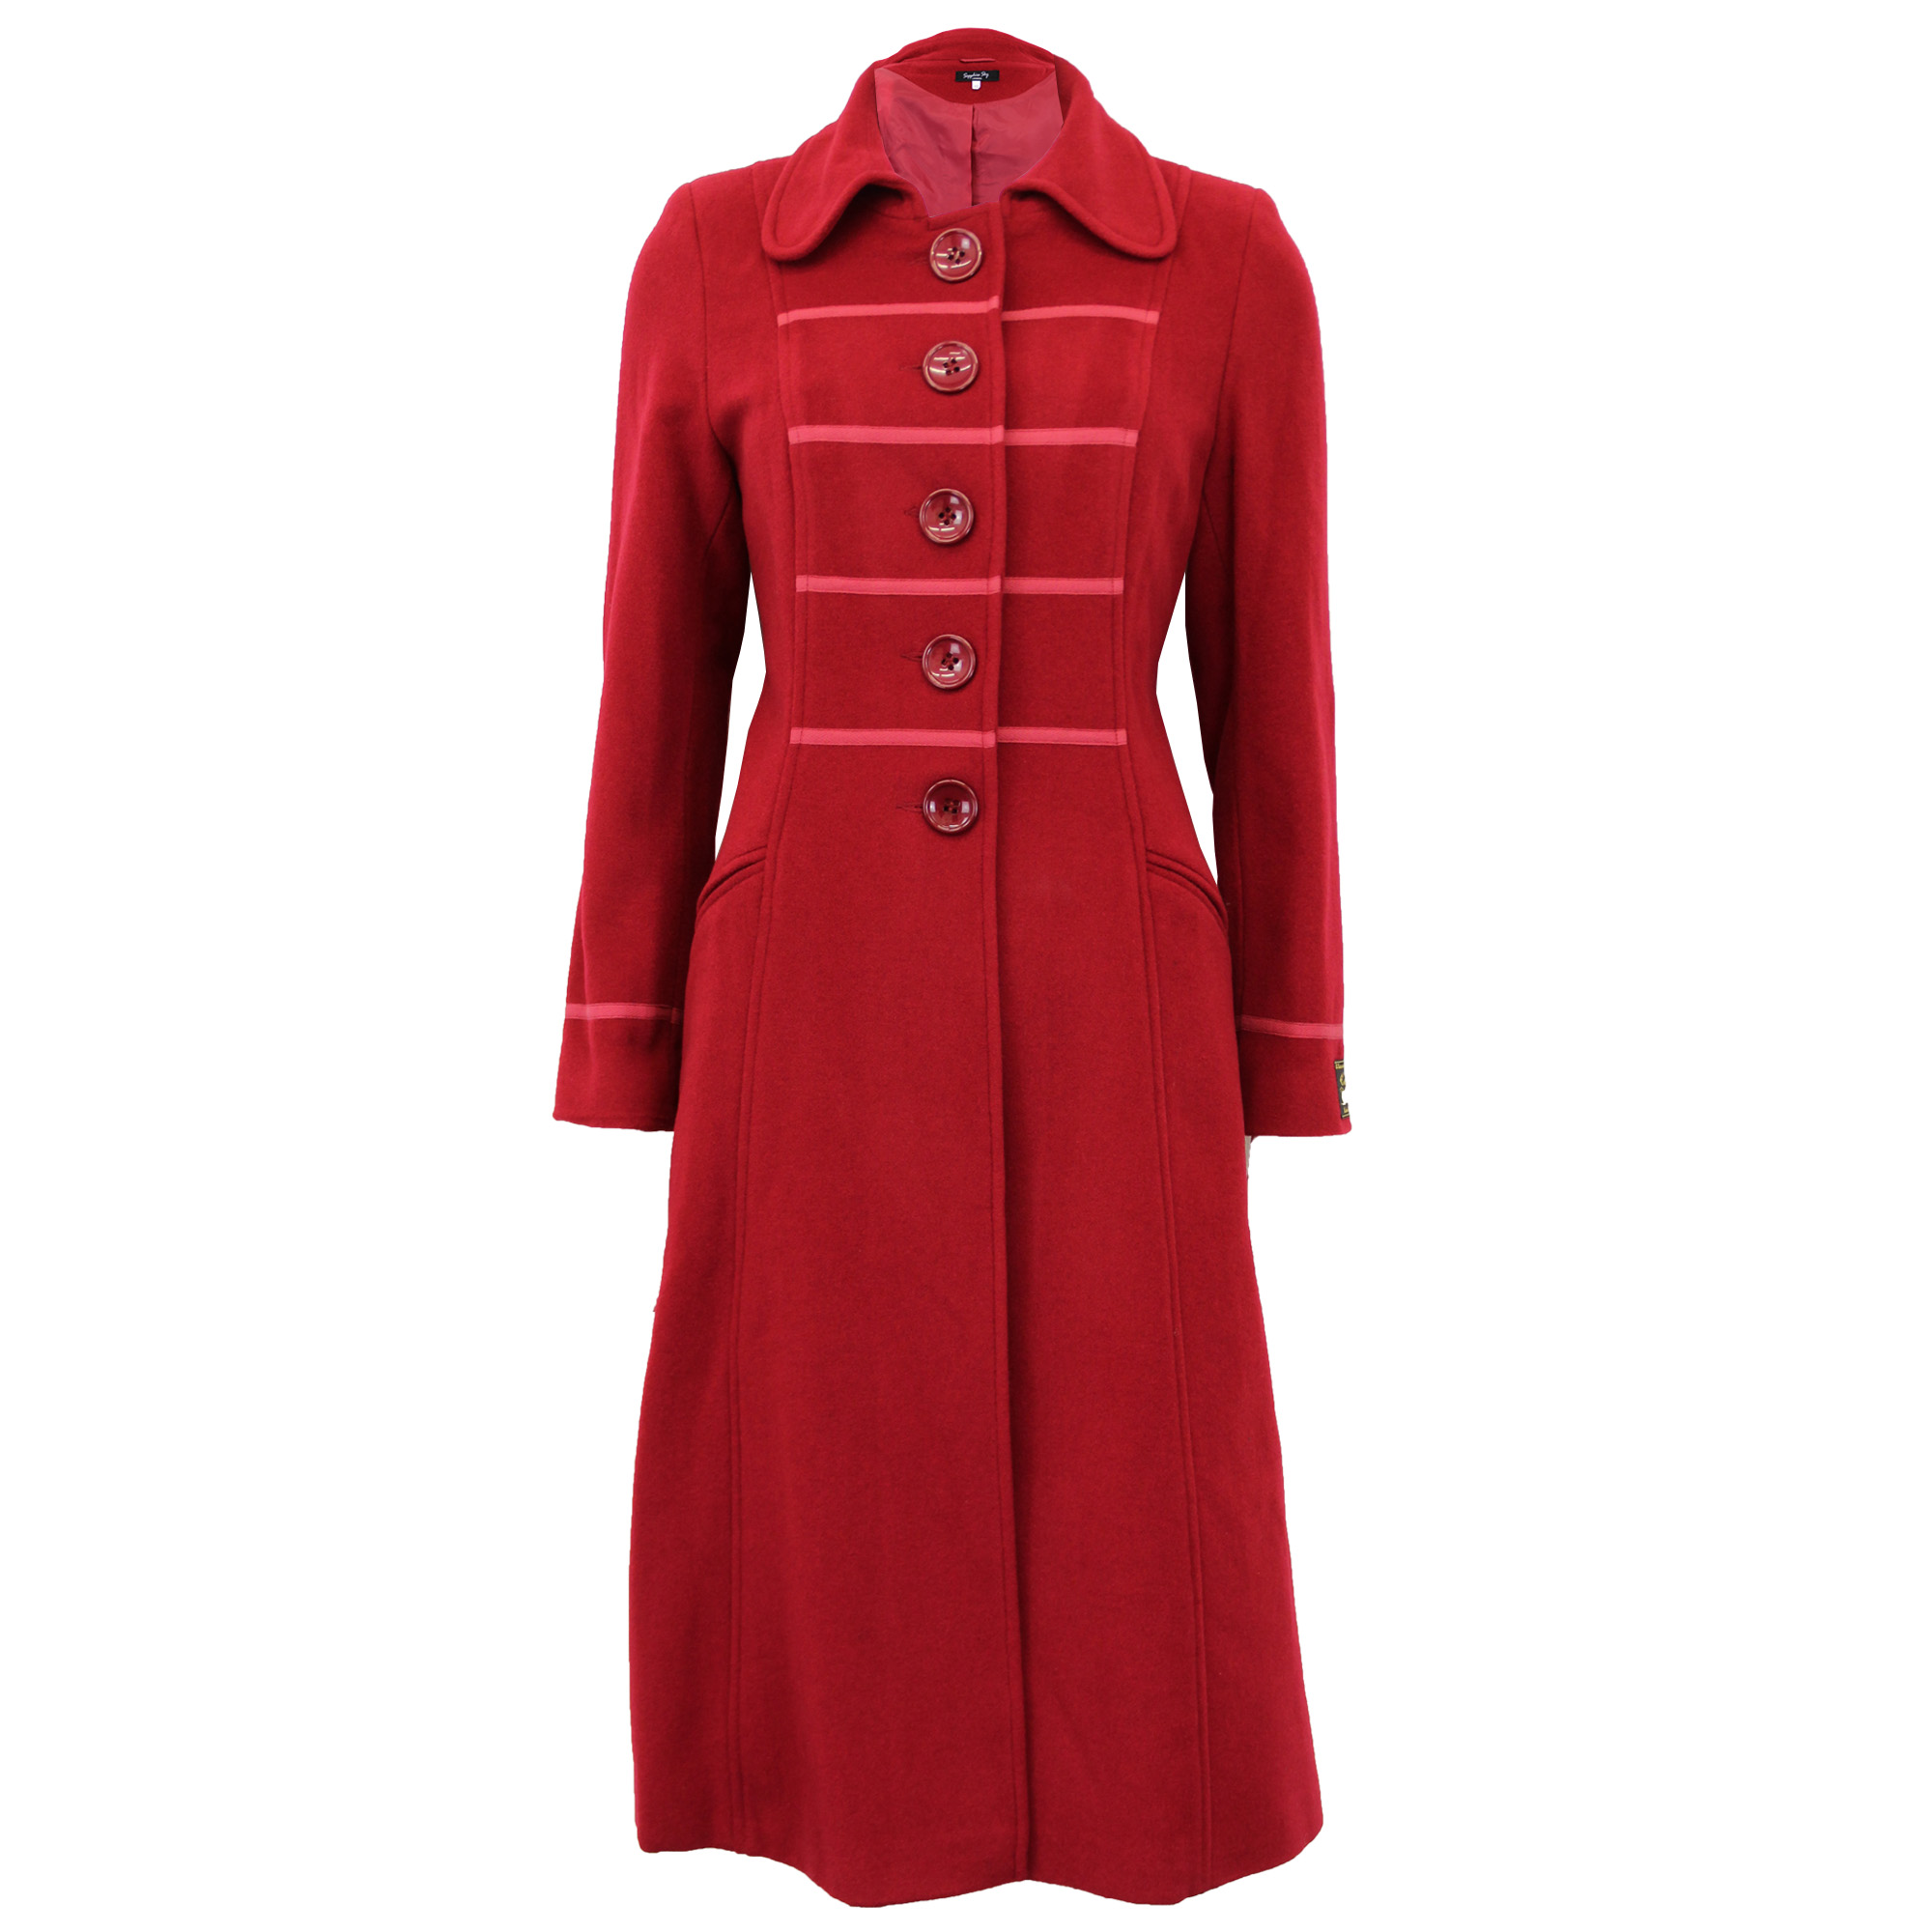 thumbnail 4 - Ladies-Wool-Cashmere-Coat-Womens-Jacket-Outerwear-Trench-Overcoat-Winter-Warm